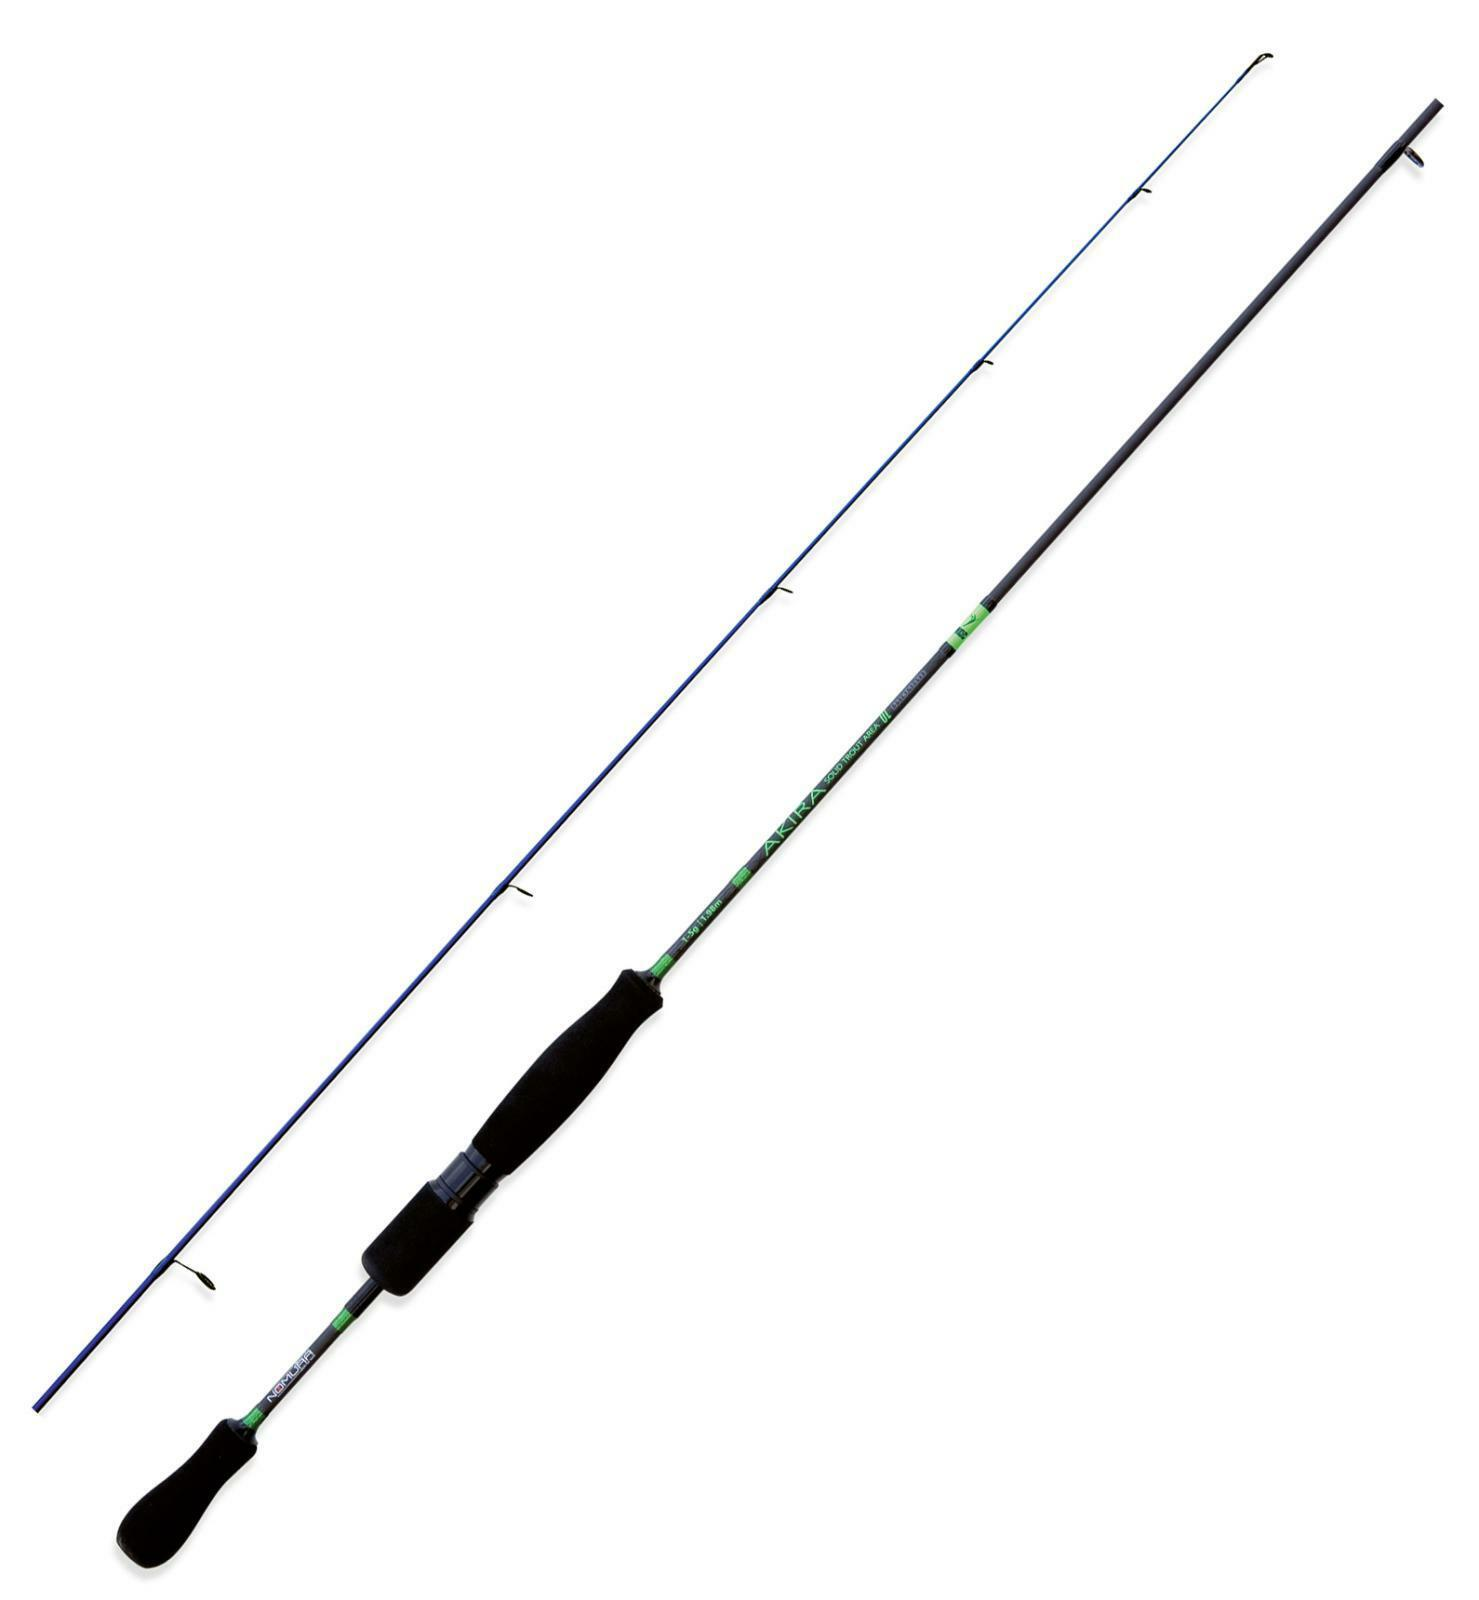 NM20520518 Nomura Canna pesca Trout Area Akira Solid 1,80cm 1-5 gr     RNG